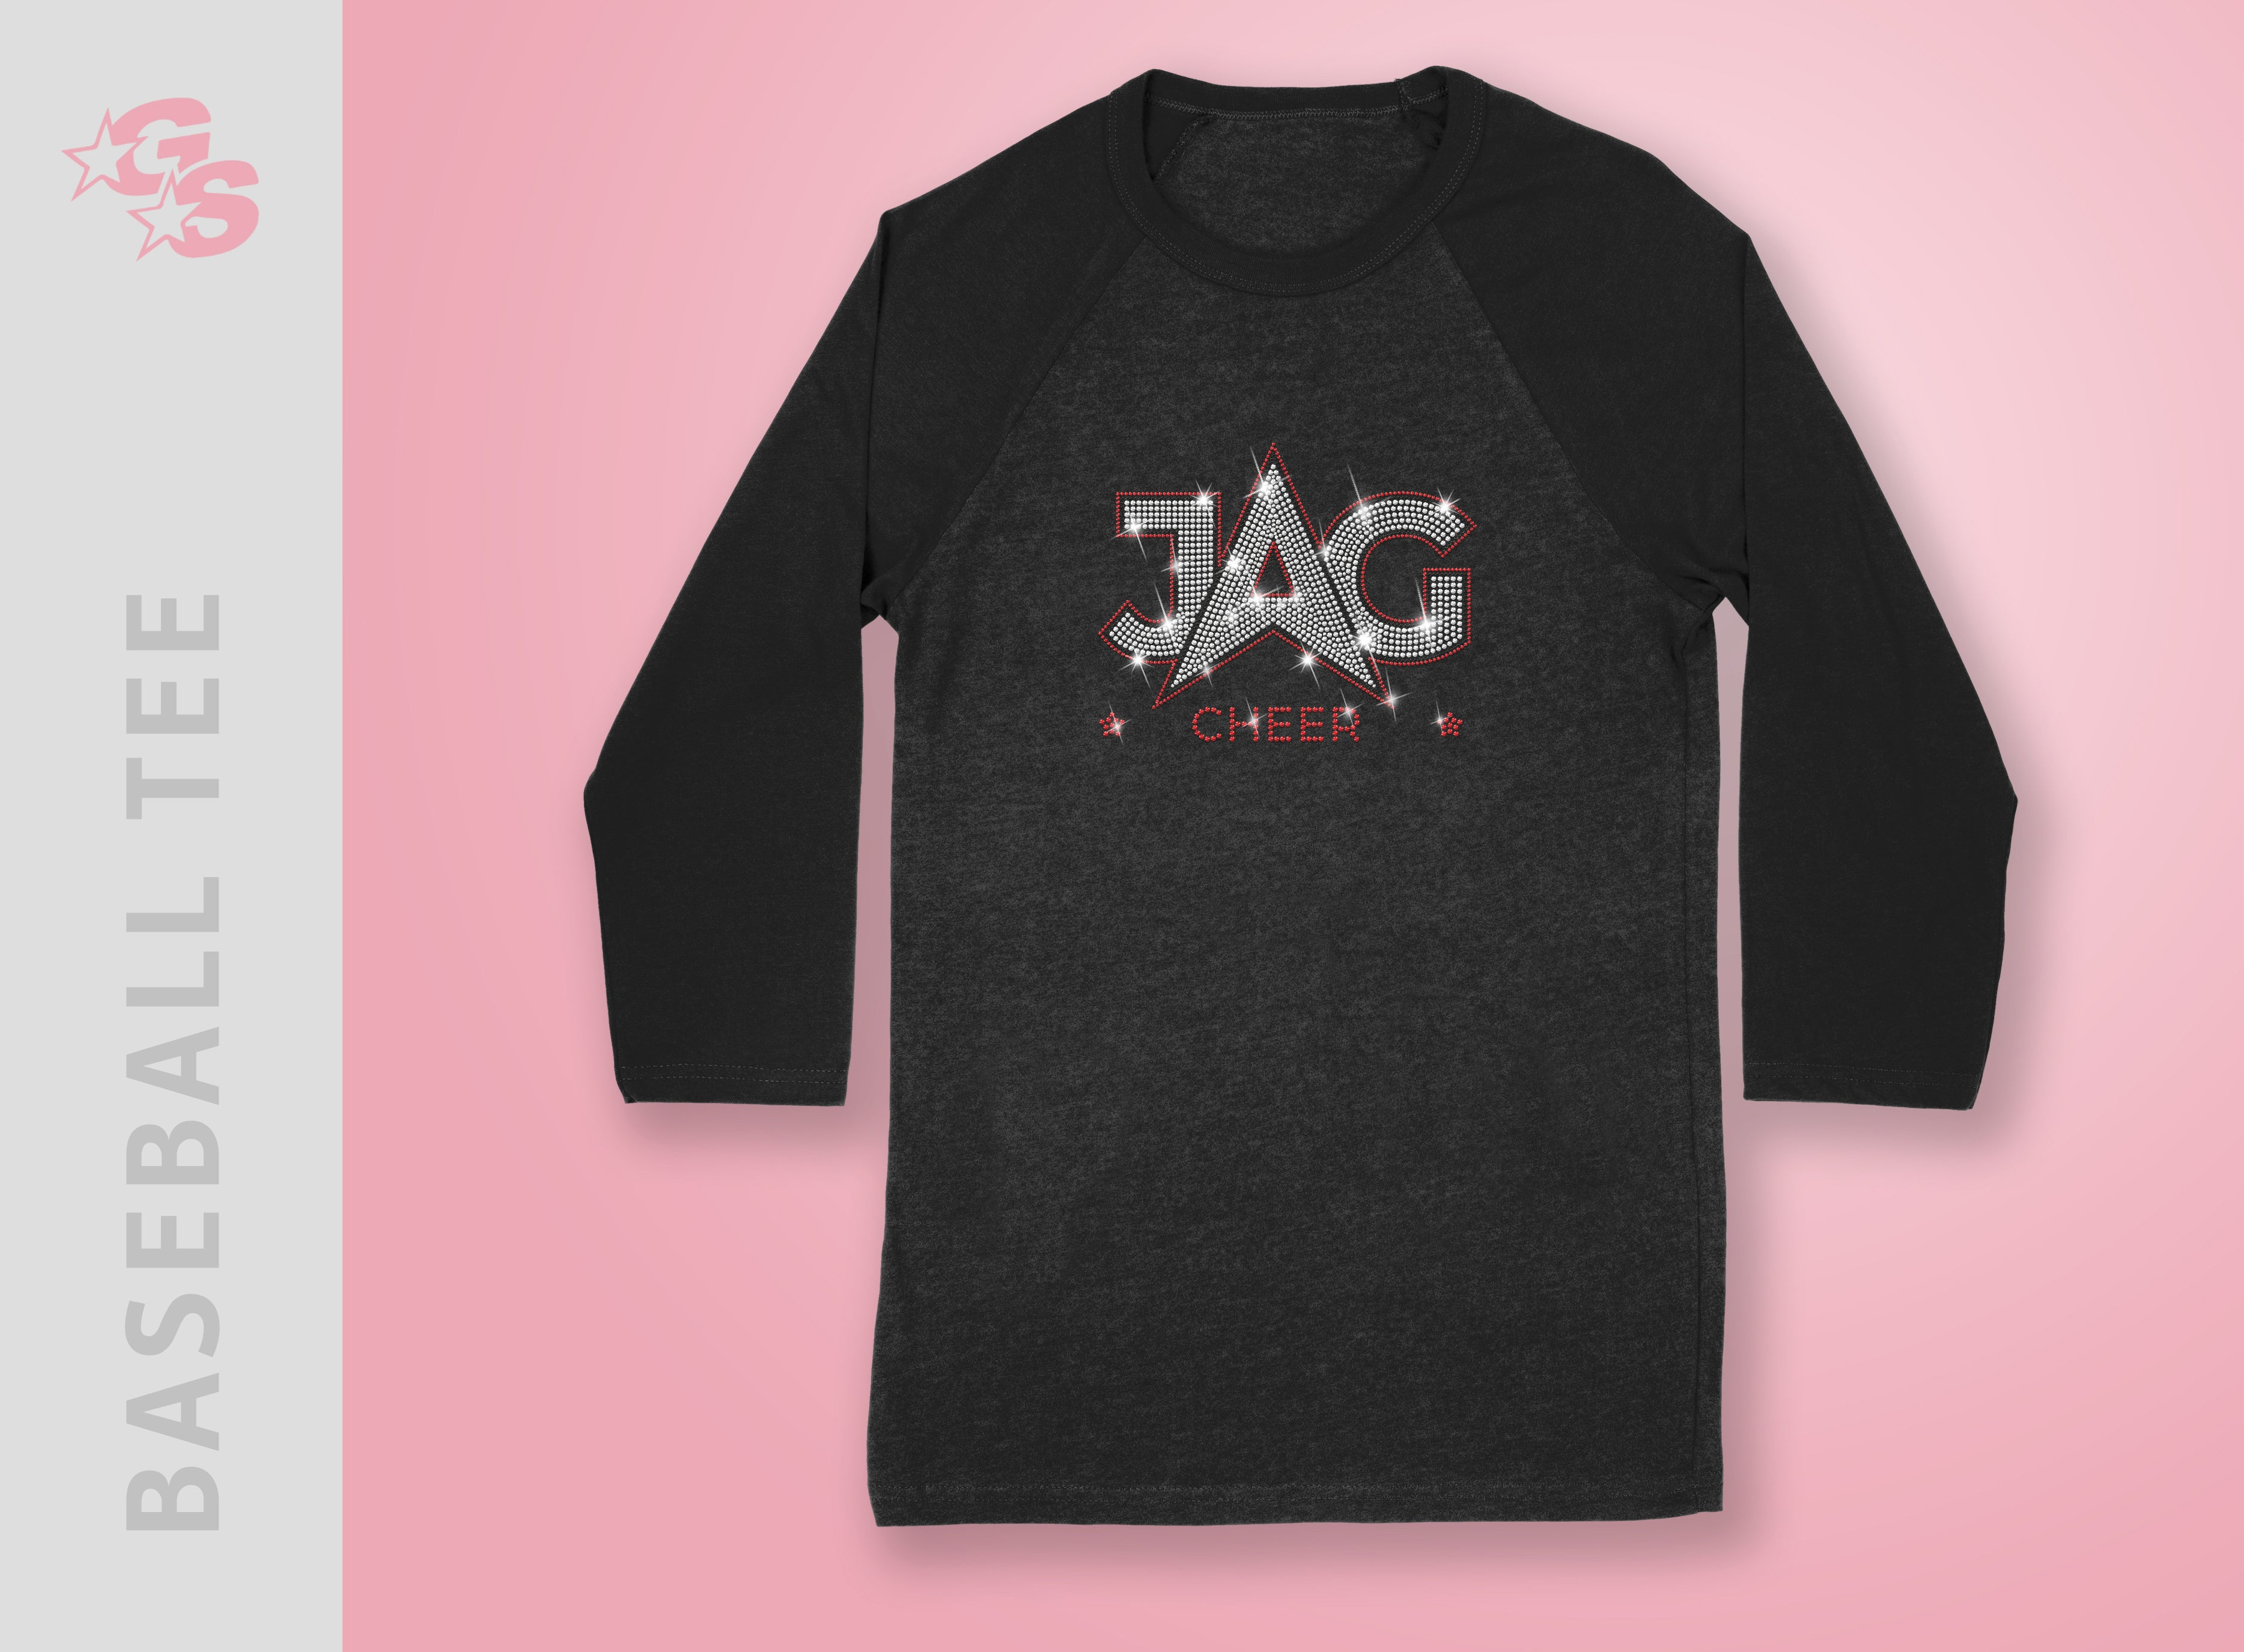 Jag Cheer Baseball Tee